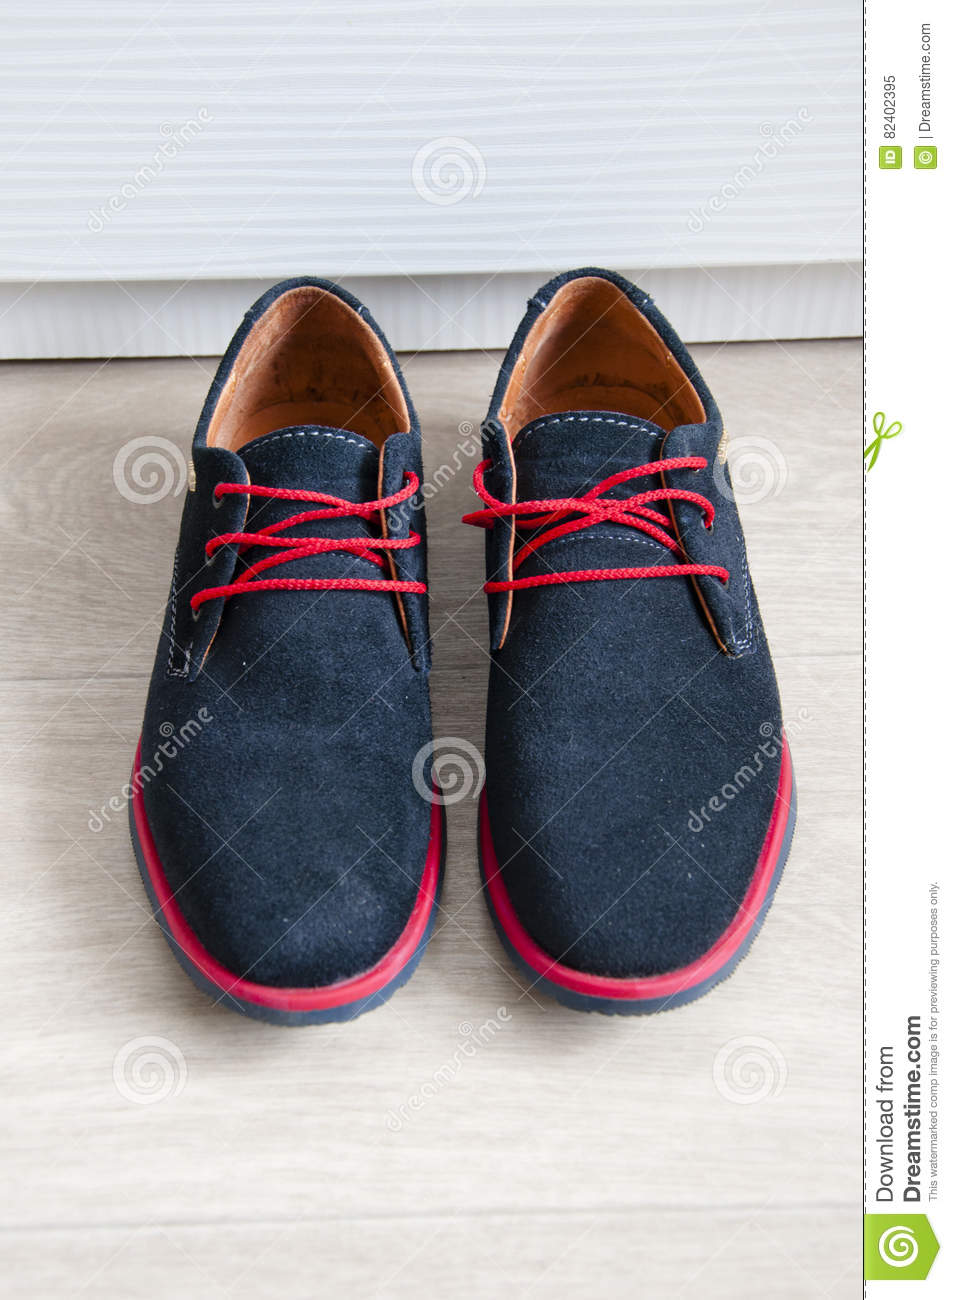 Blue Suede Shoes With Red Laces Stock